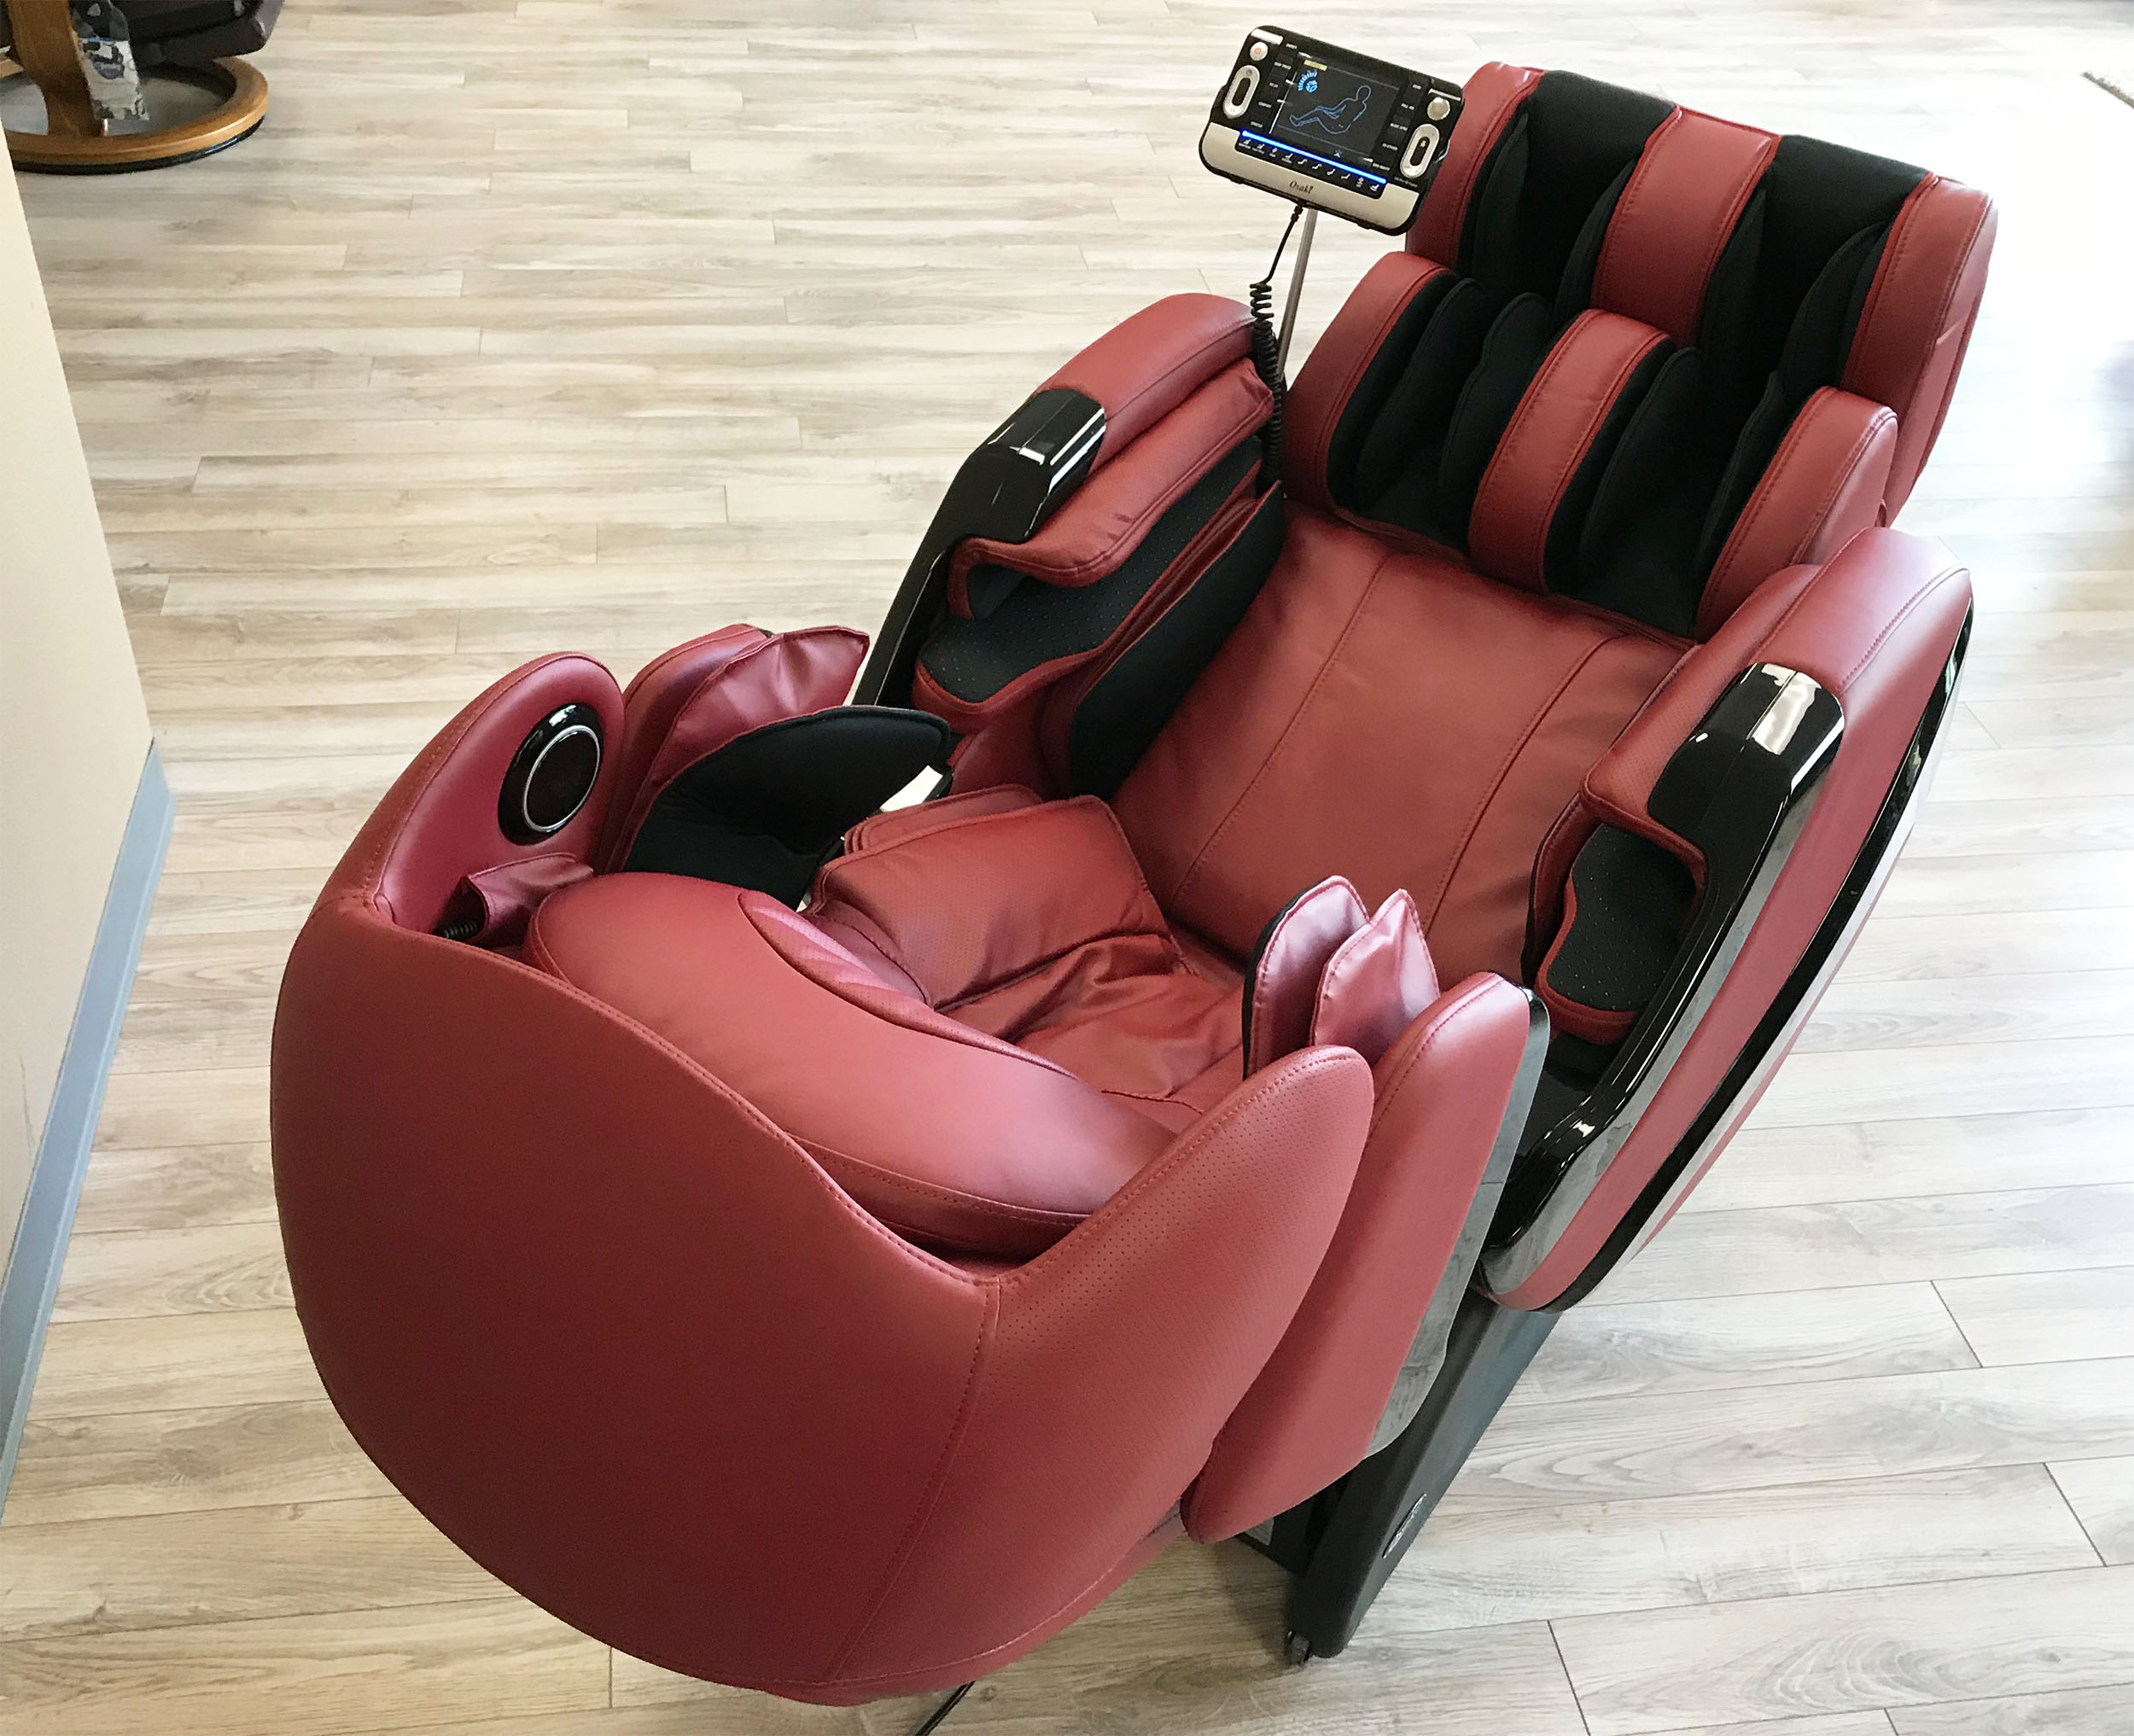 osaki os 3d pro cyber massage chair wheel price in pakistan zero gravity recliner and loungers for red